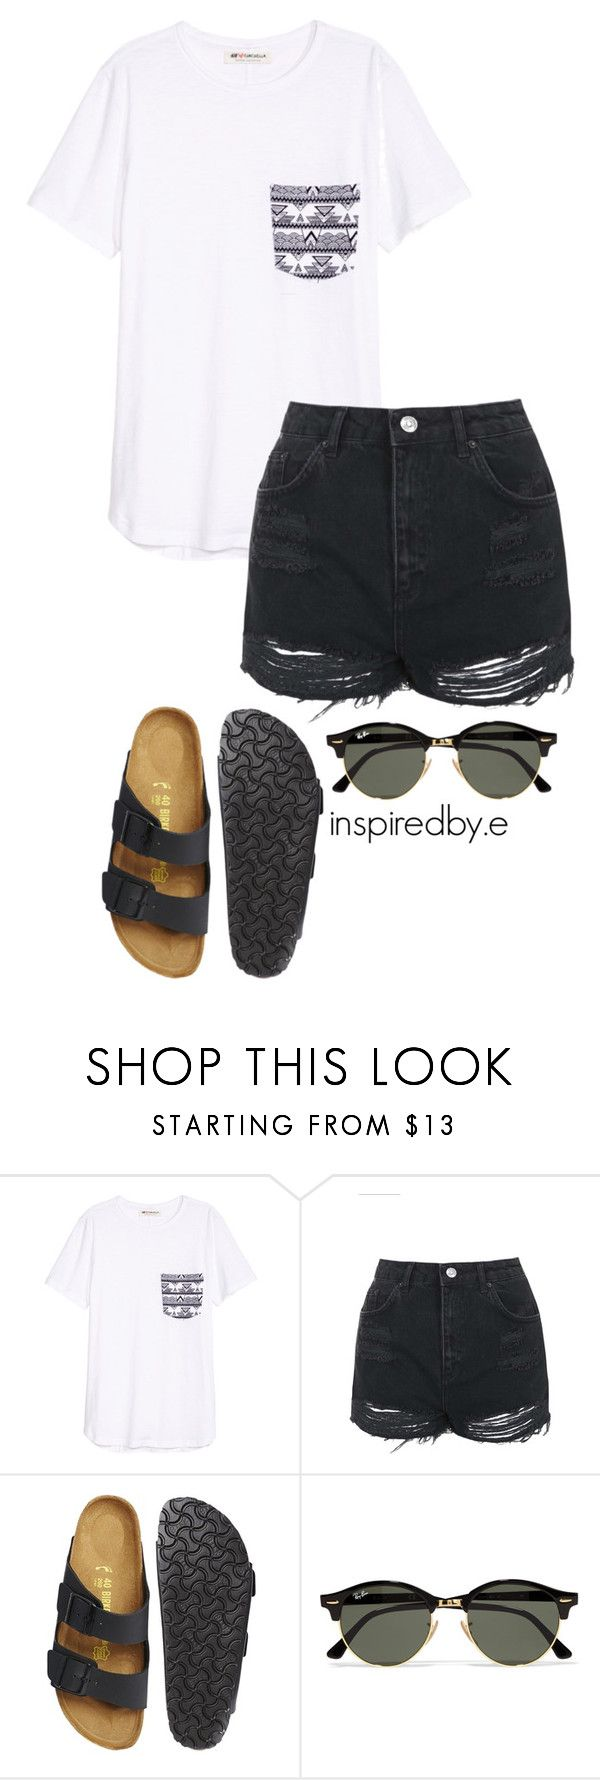 """Boy toy"" by emmakiis on Polyvore featuring Topshop, Birkenstock and Ray-Ban"